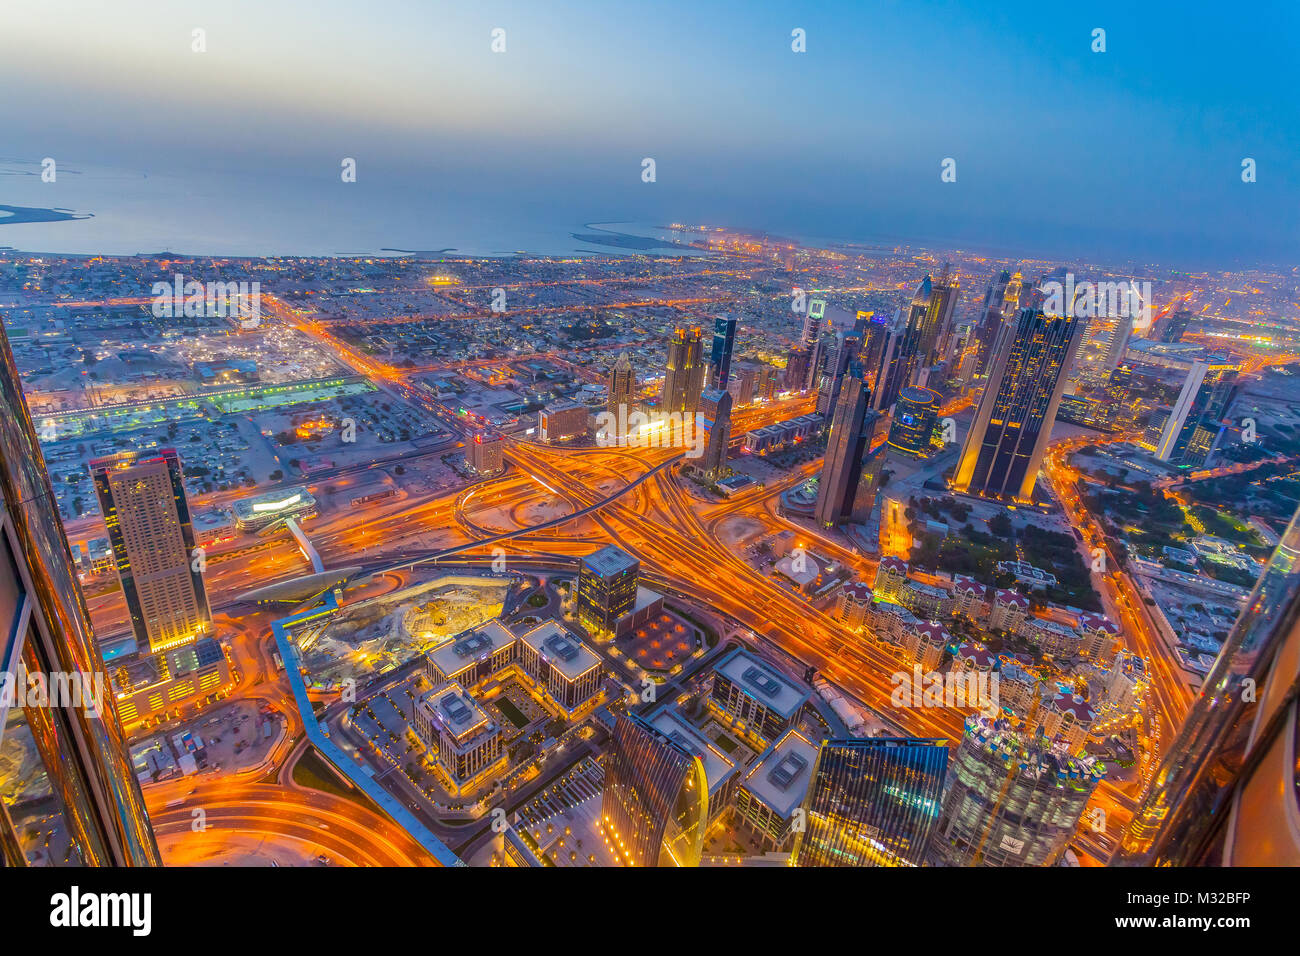 Aerial view of Downtown Dubai at the sunset - Stock Image